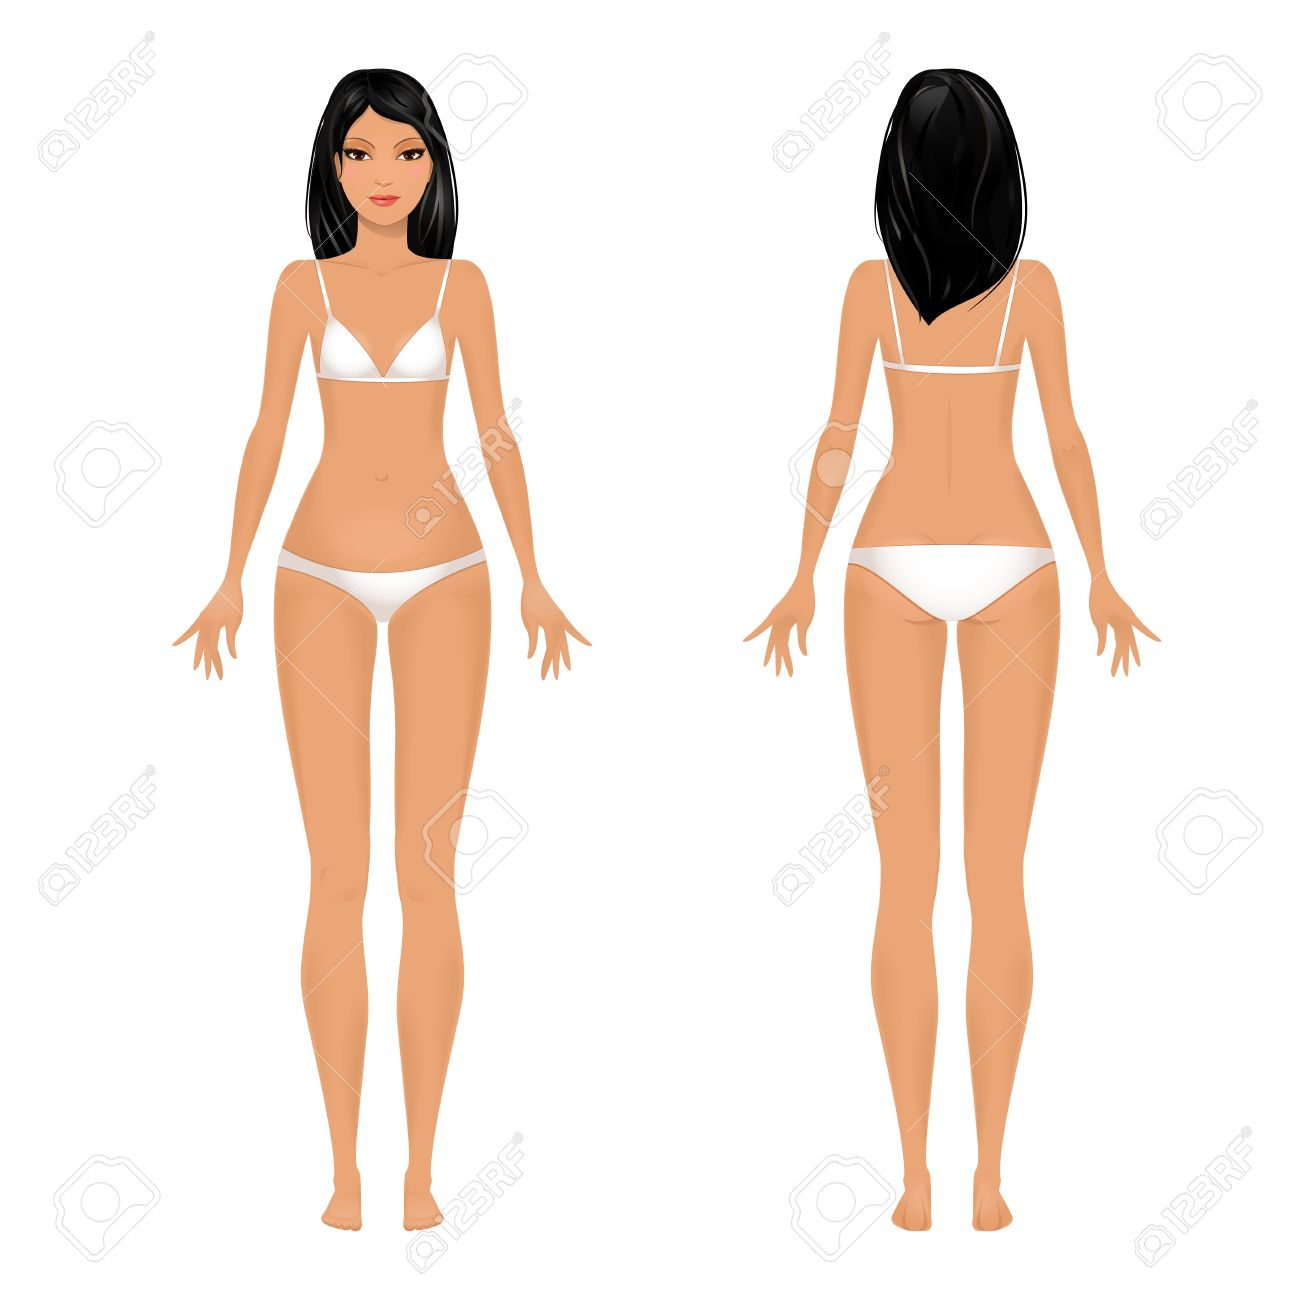 Female body template front and back. - 25955620